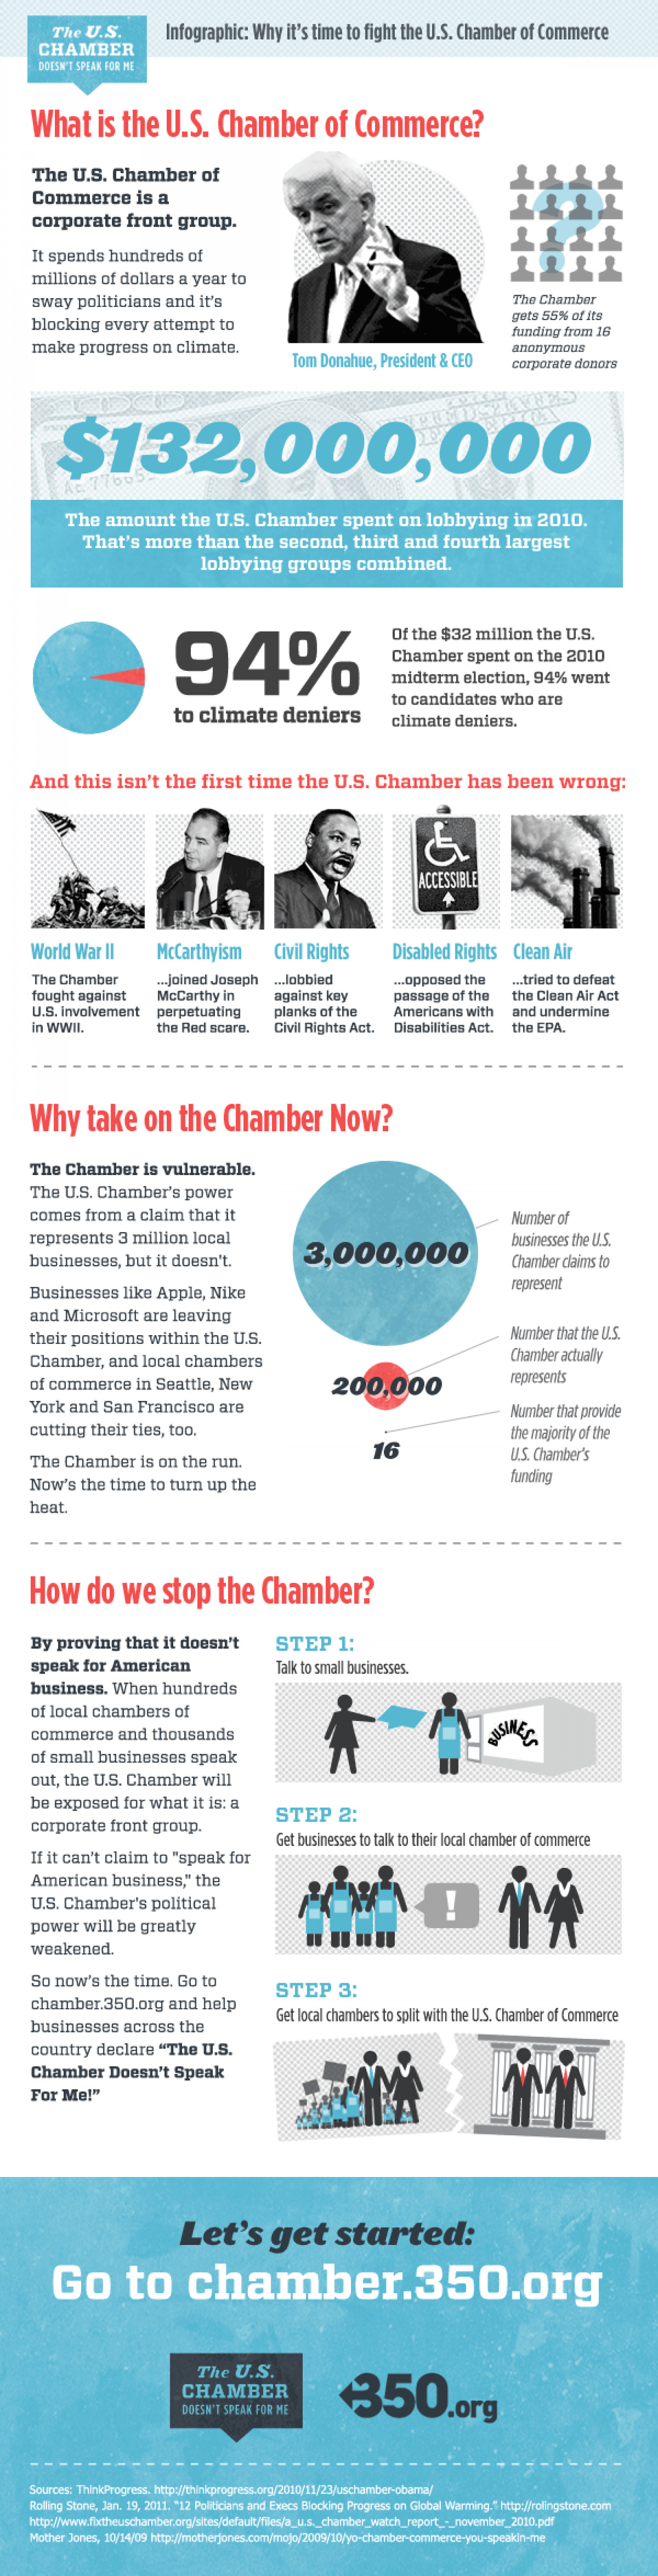 Why it's Time to Fight the U.S Chamber of Commerce  Infographic